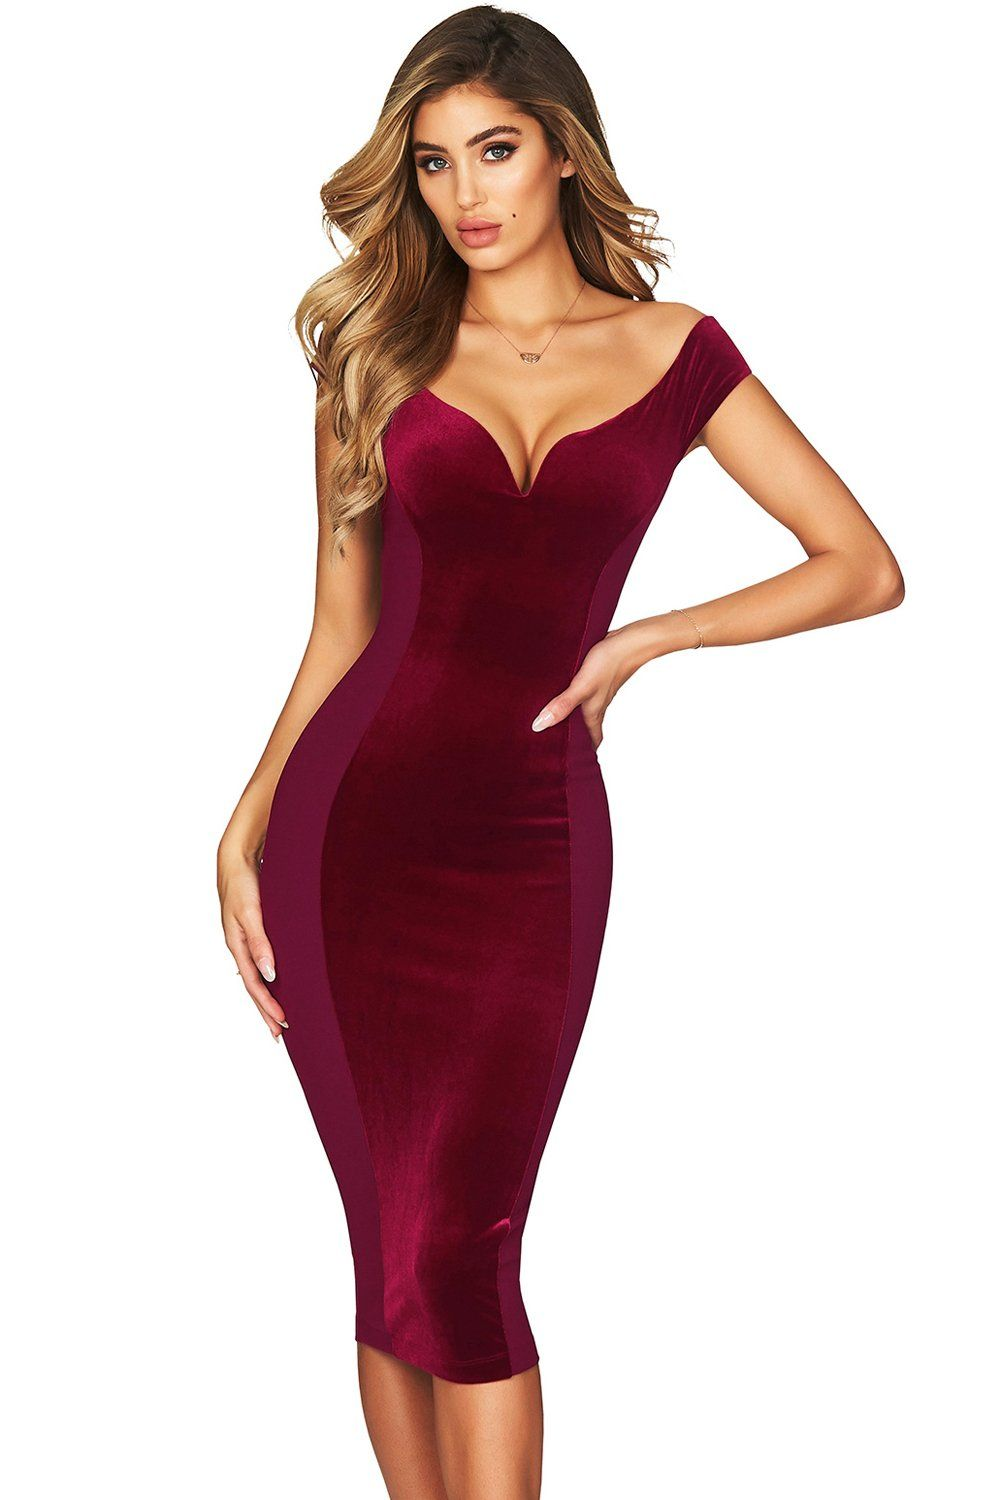 765404011a1 Show Hourglass Figure Burgundy Off Shoulder Dress | Hourglass shape ...